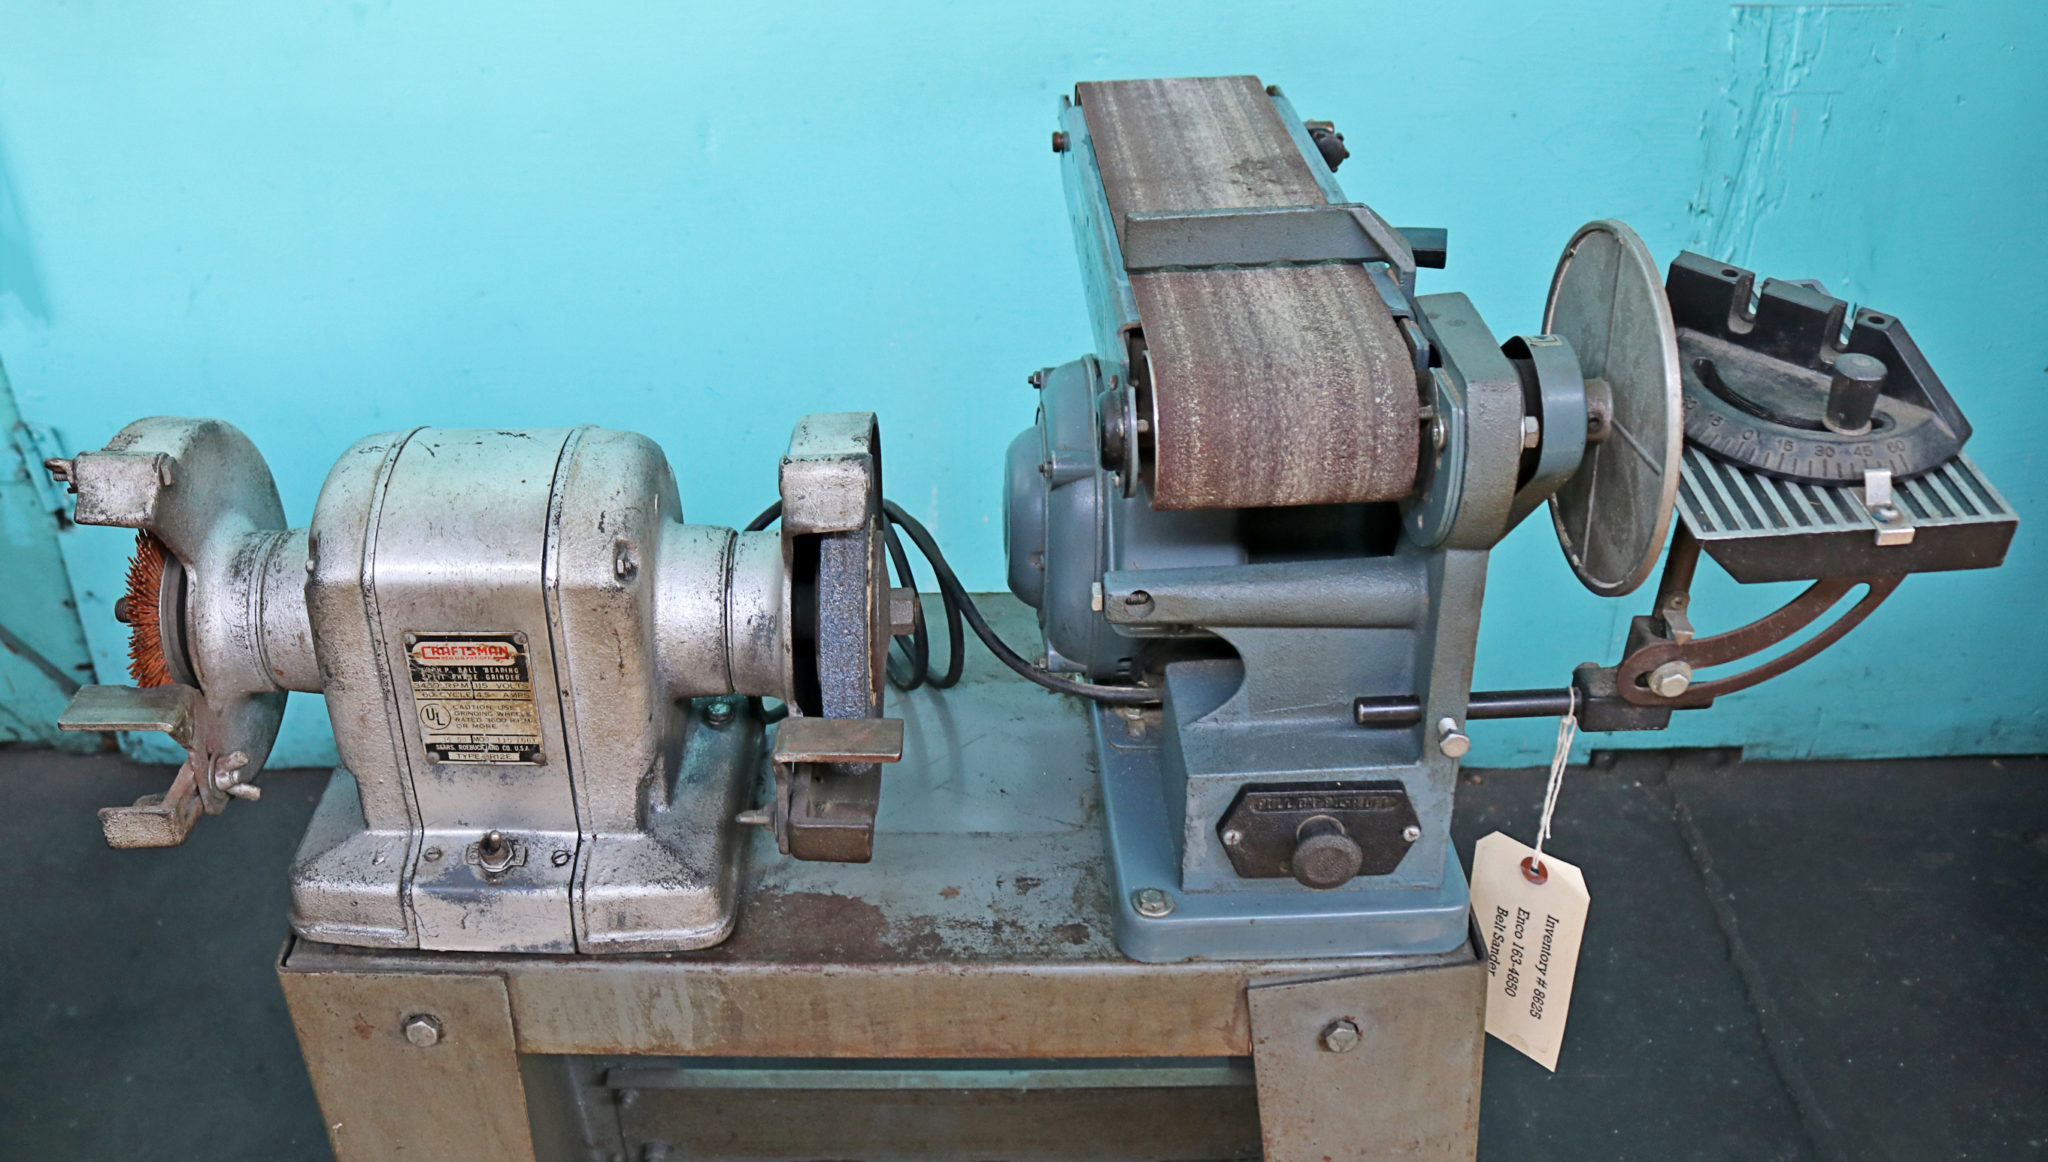 Astounding Enco Belt Disc Sander And Craftsman Buffer Grinder Caraccident5 Cool Chair Designs And Ideas Caraccident5Info